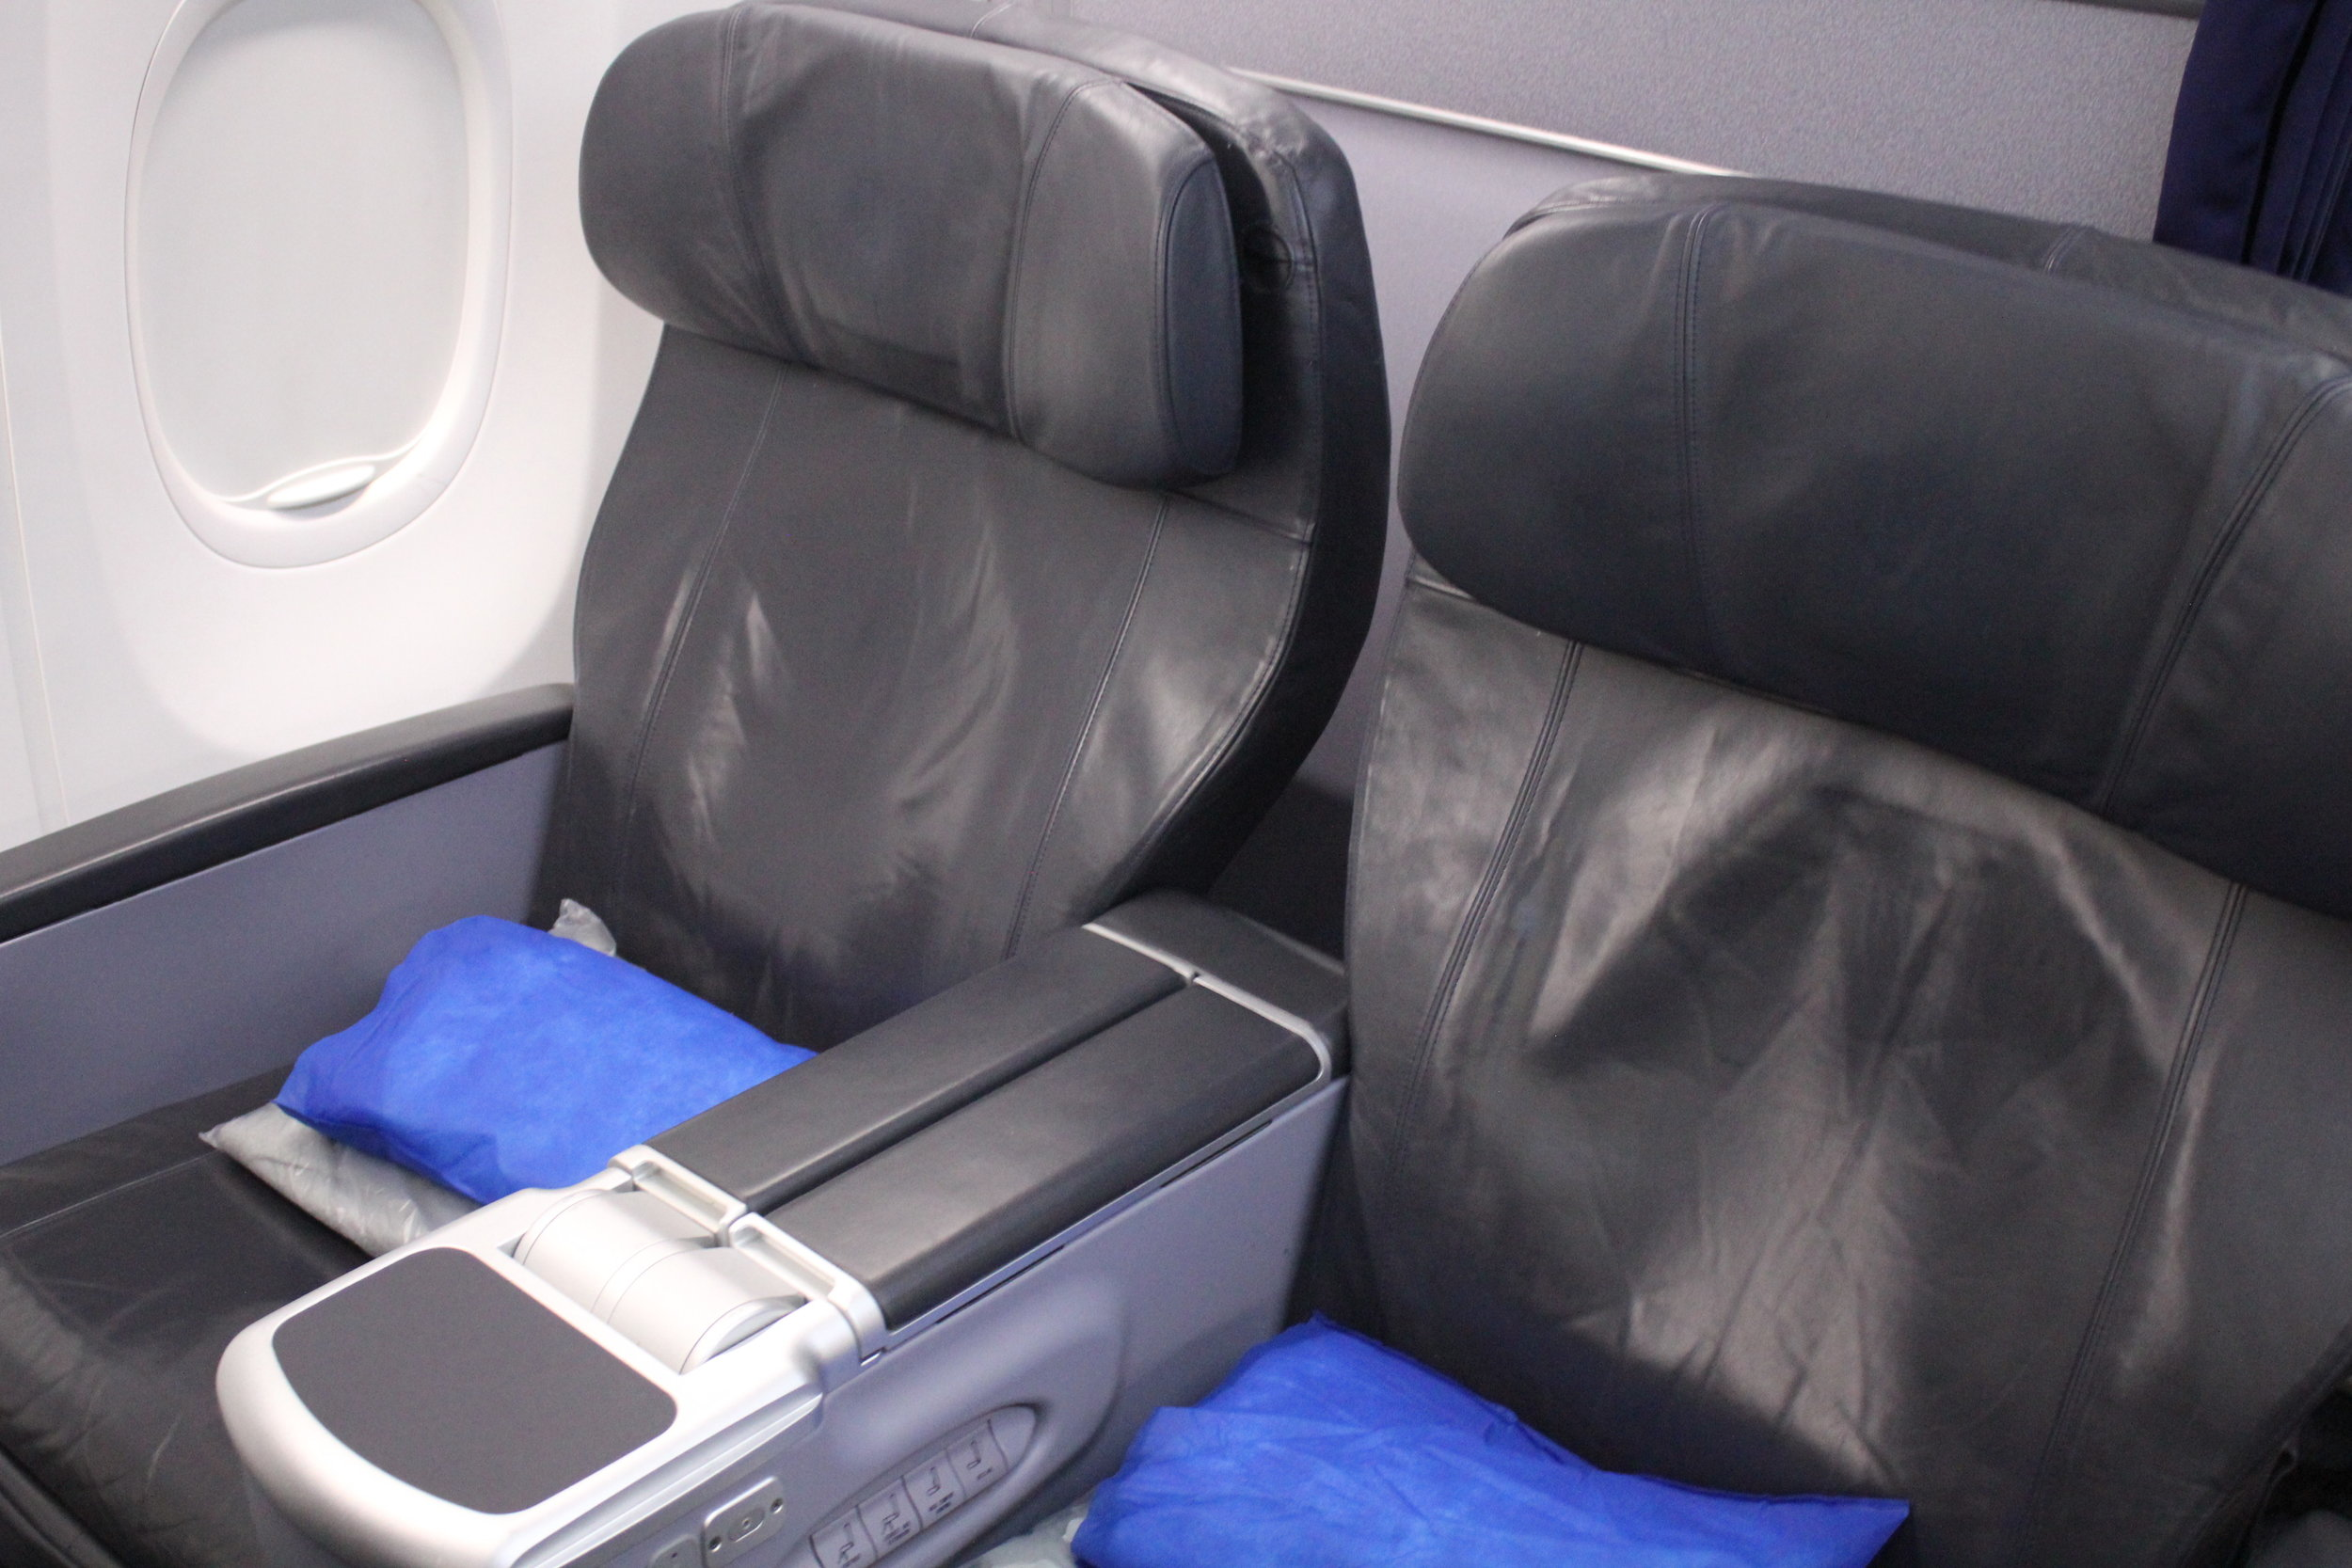 Copa Airlines business class – Seats 4E and 4F